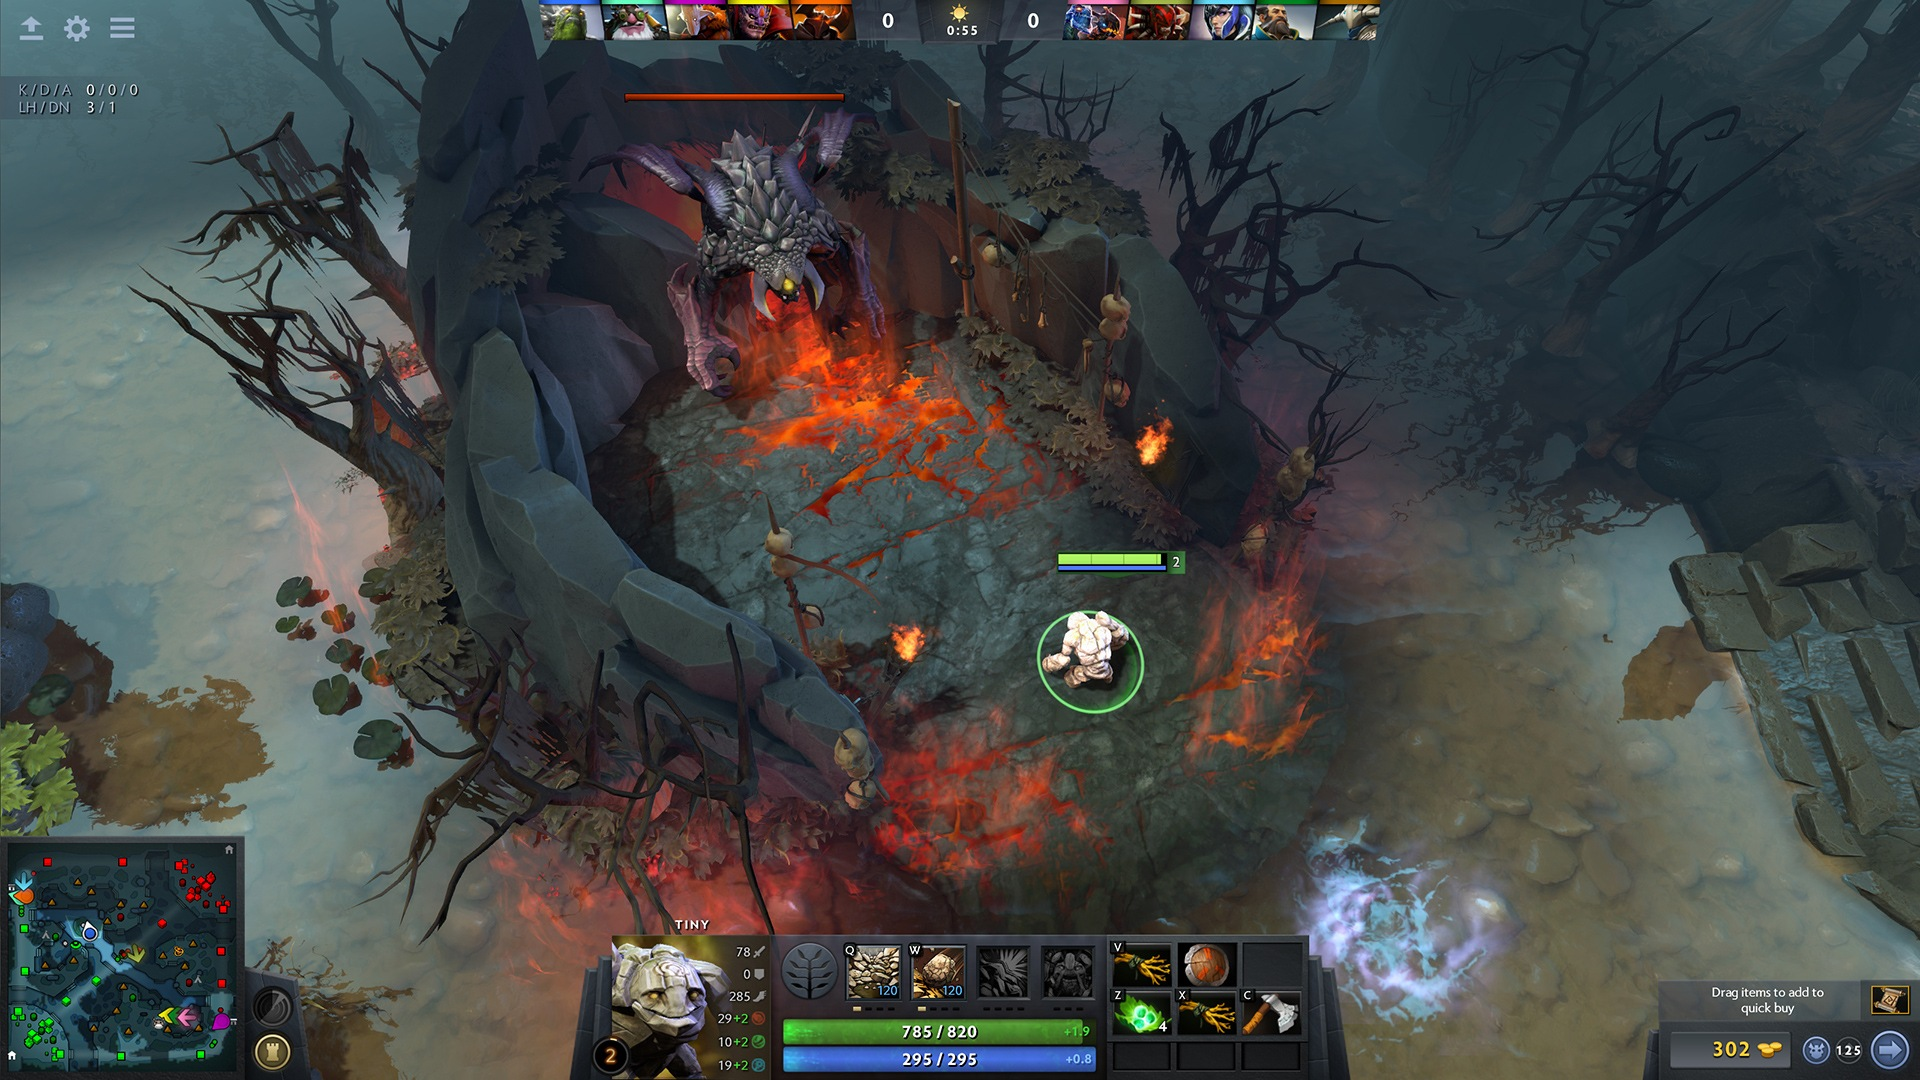 Dota 2 had a small New Year's Eve update